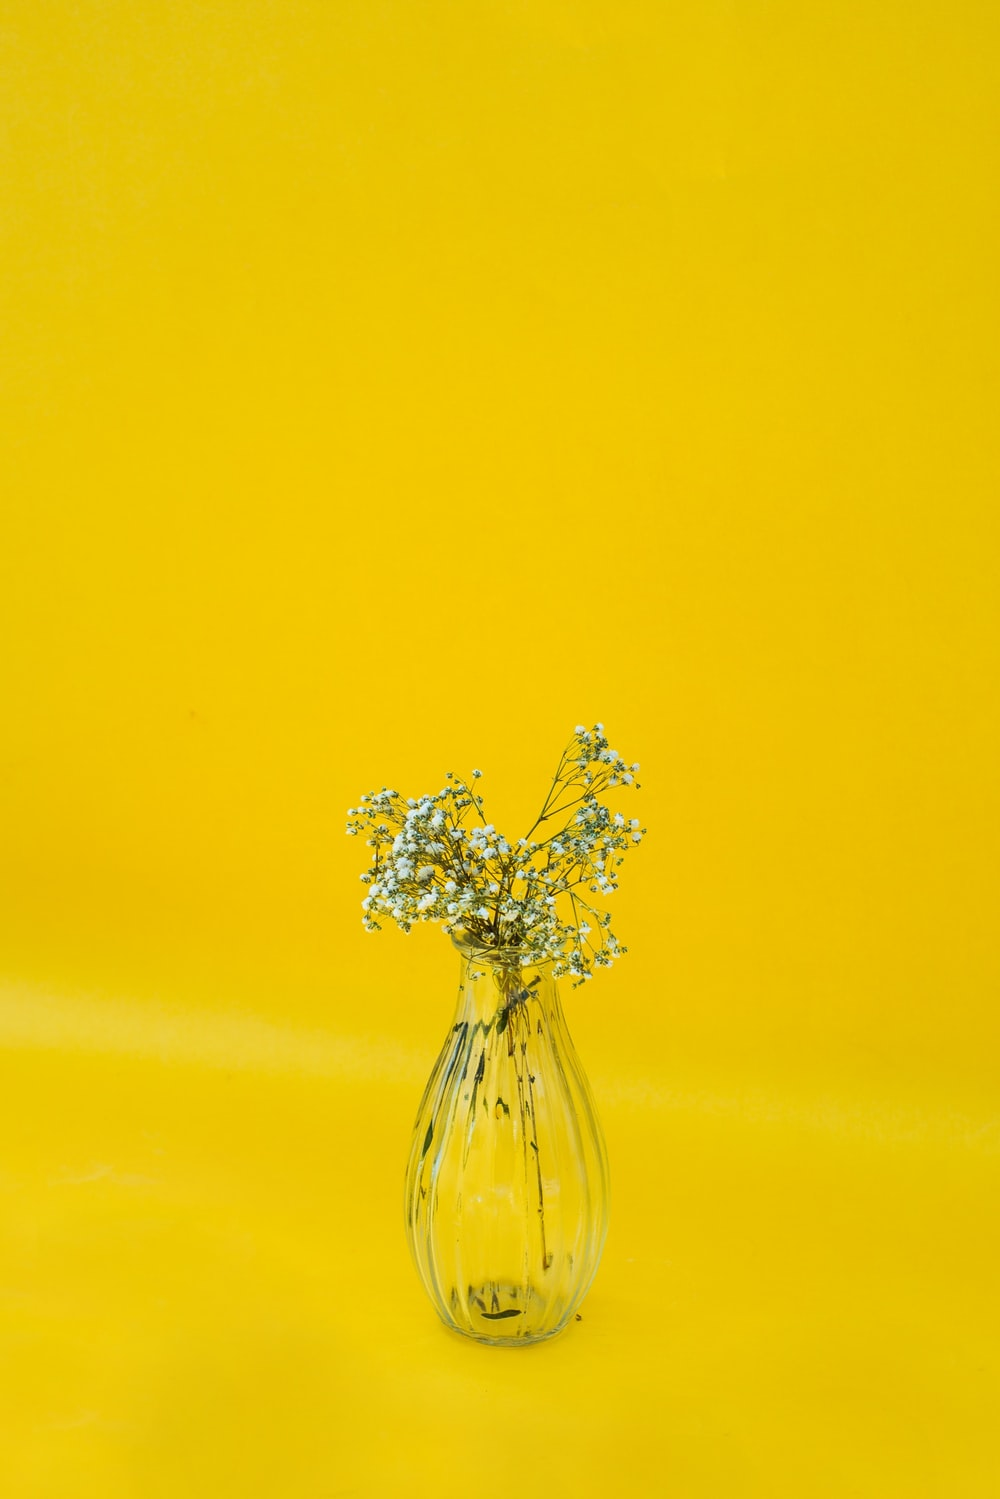 Flowers In A Glass Vase With Yellow Background